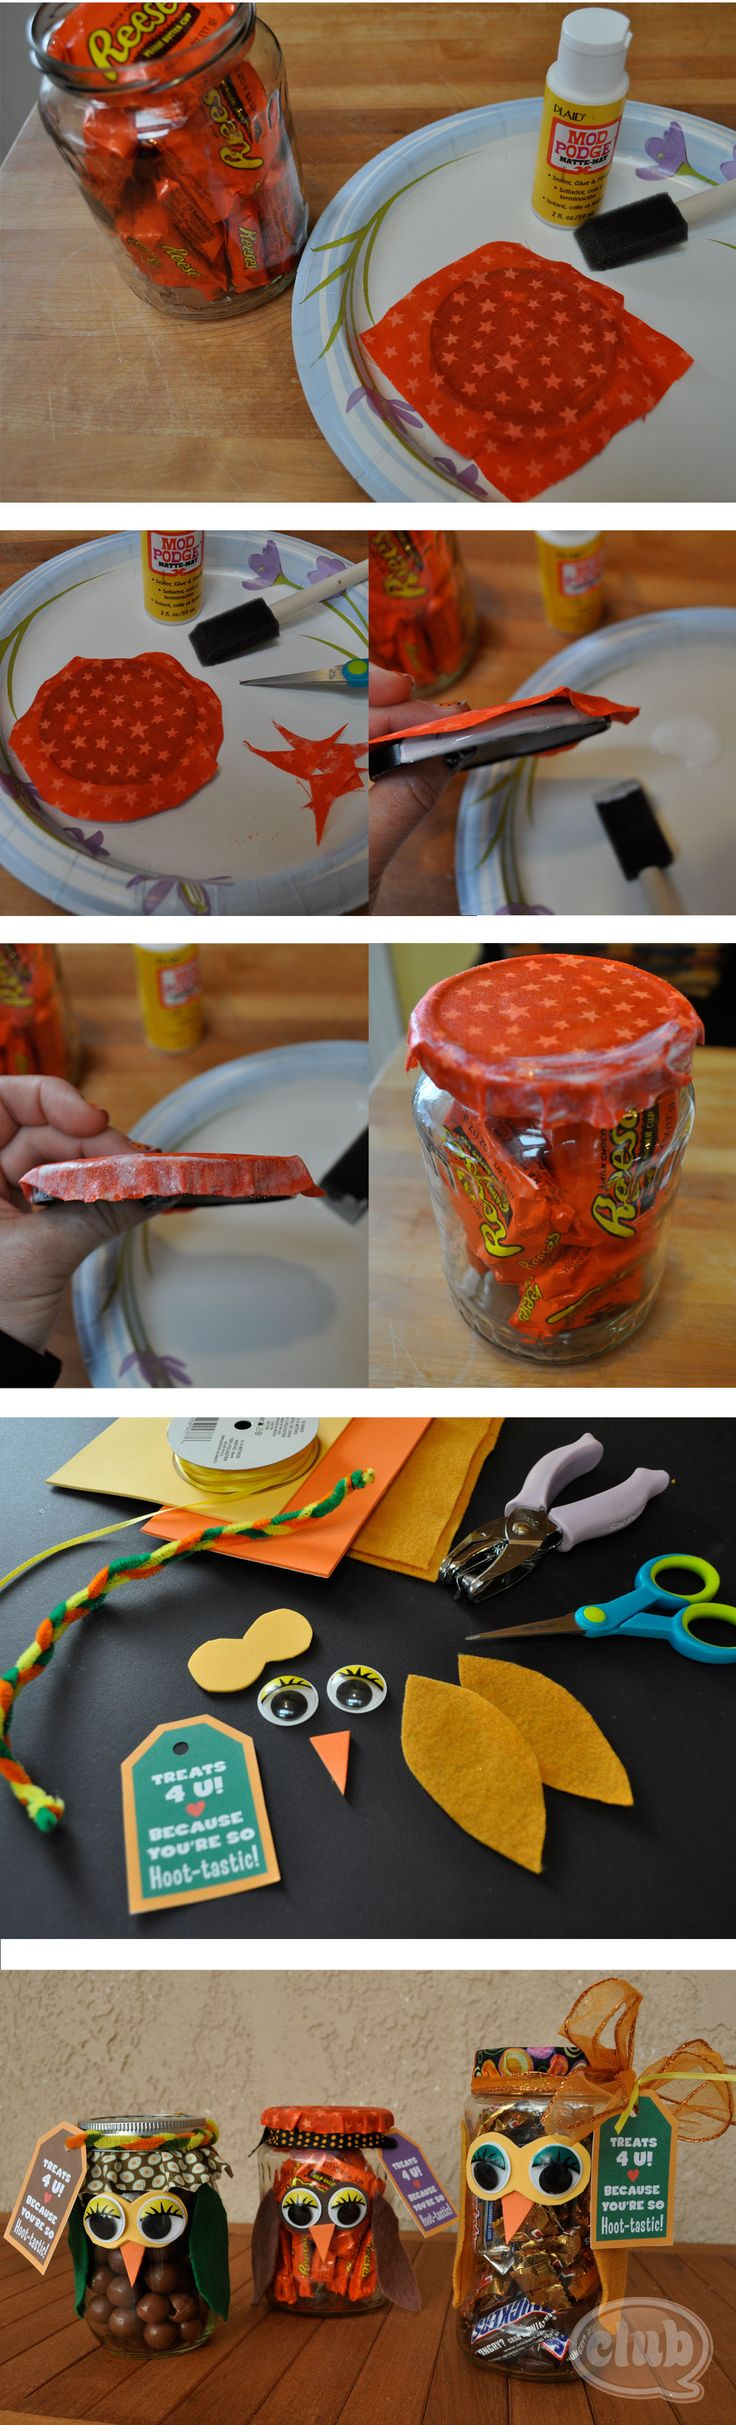 Upcycle glass jar, fill with candy, mod podge fabric on lid, add owl features.: Jars Diy, Recycled Jars, Mod Podge, Halloween Candy, Owl Candy, Glasses Jars, Podge Fabrics, Mason Jars, Candy Jars